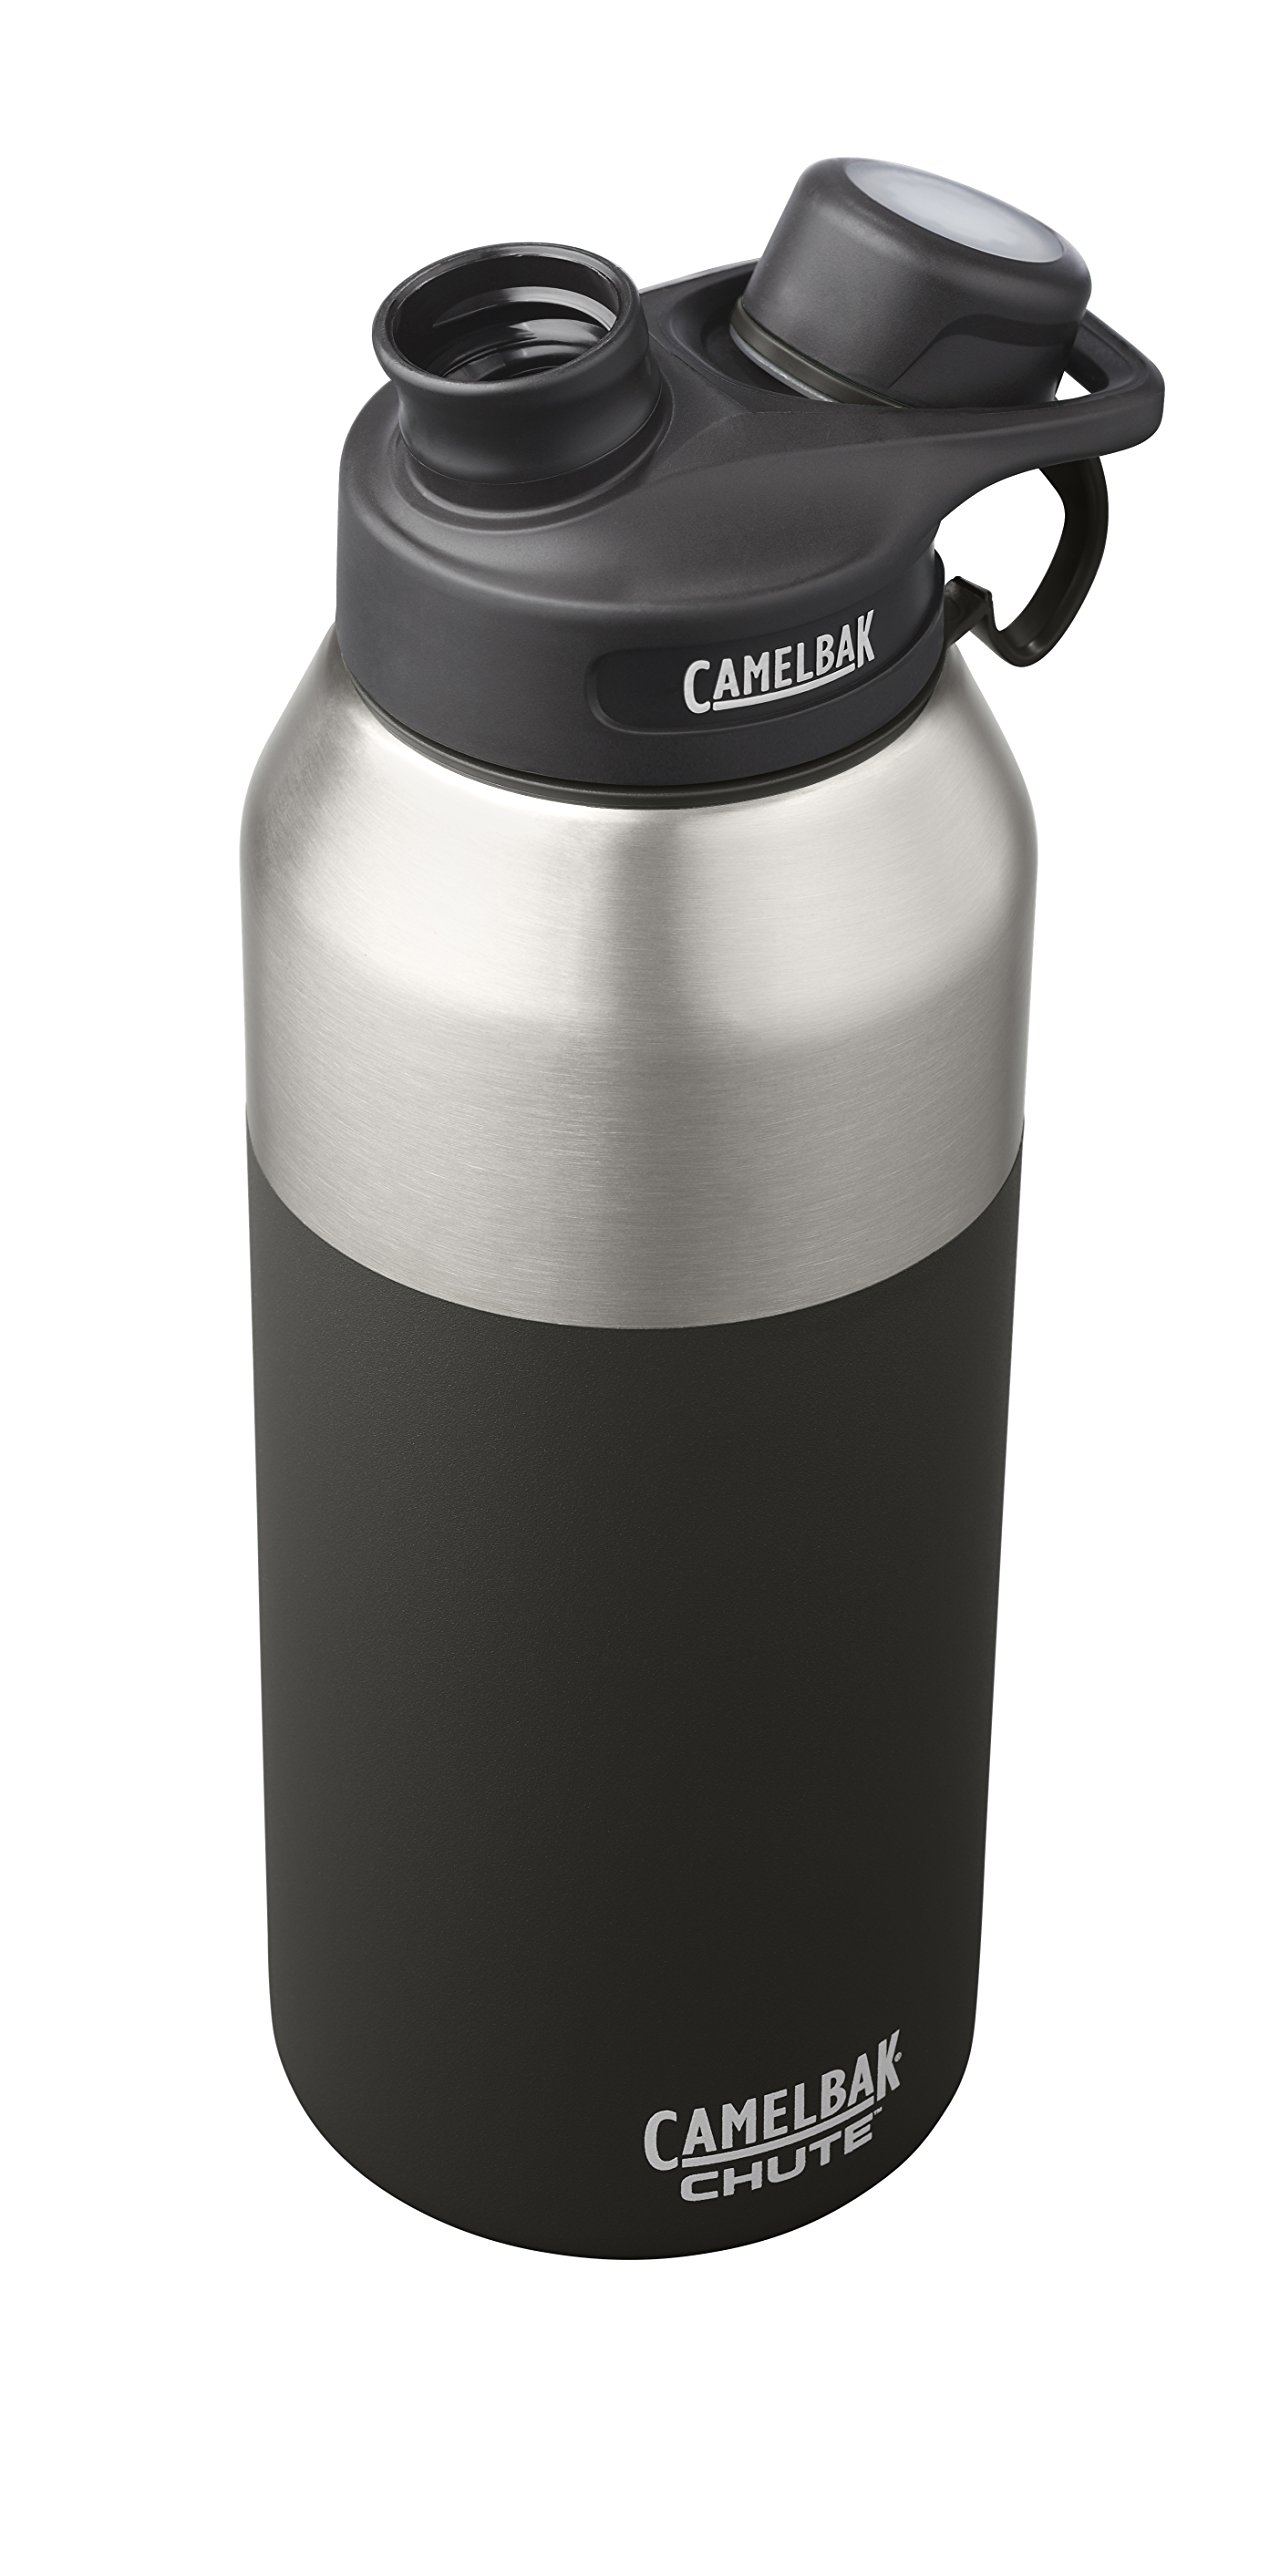 CamelBak 53868 Chute Vacuum Insulated Stainless Water Bottle, 40 oz, Jet by CamelBak (Image #3)